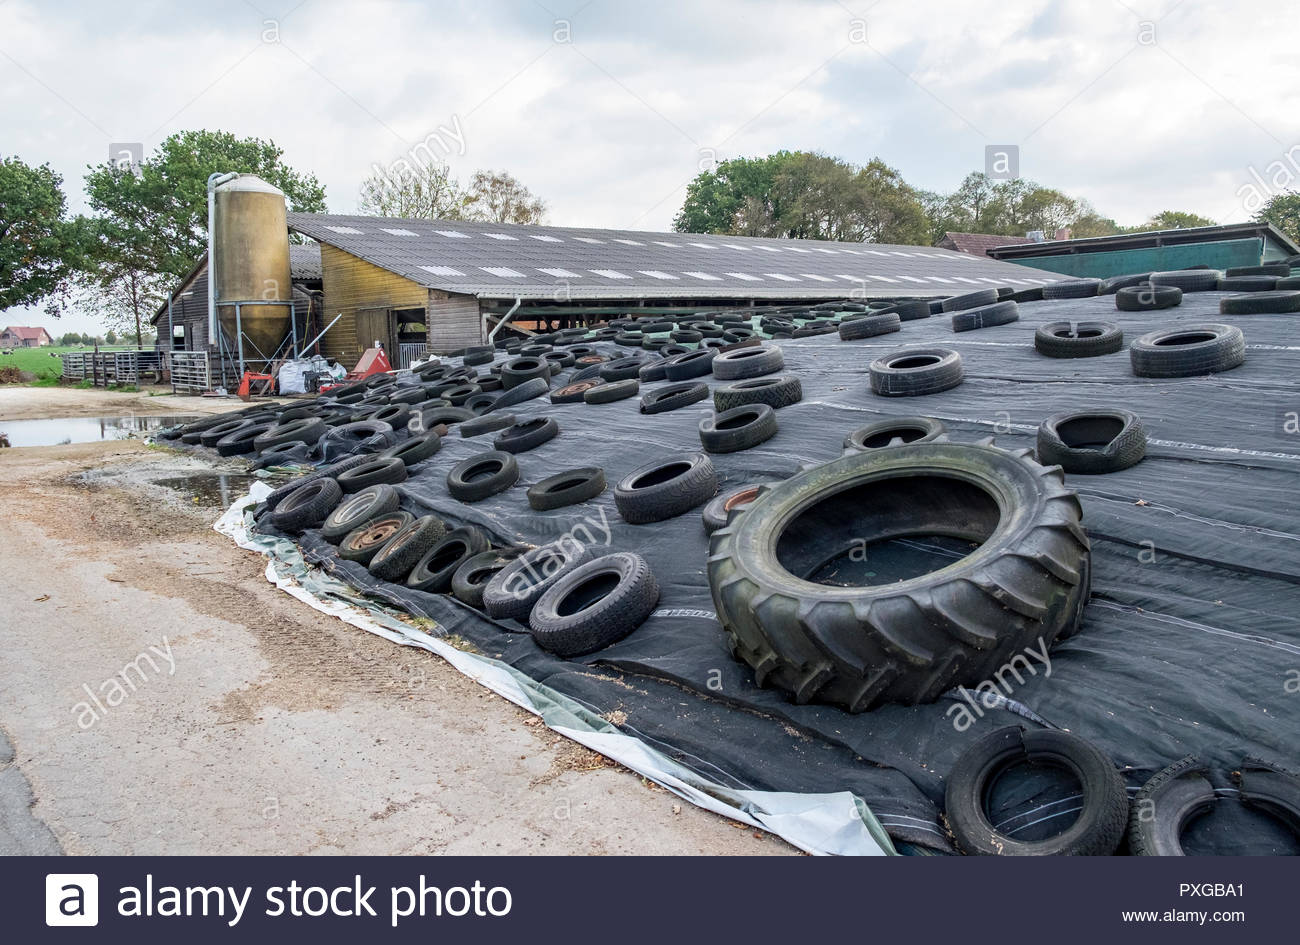 Fodder storage, silage, stored under tarpaulin weighted with old tires, northern Germany - Stock Image